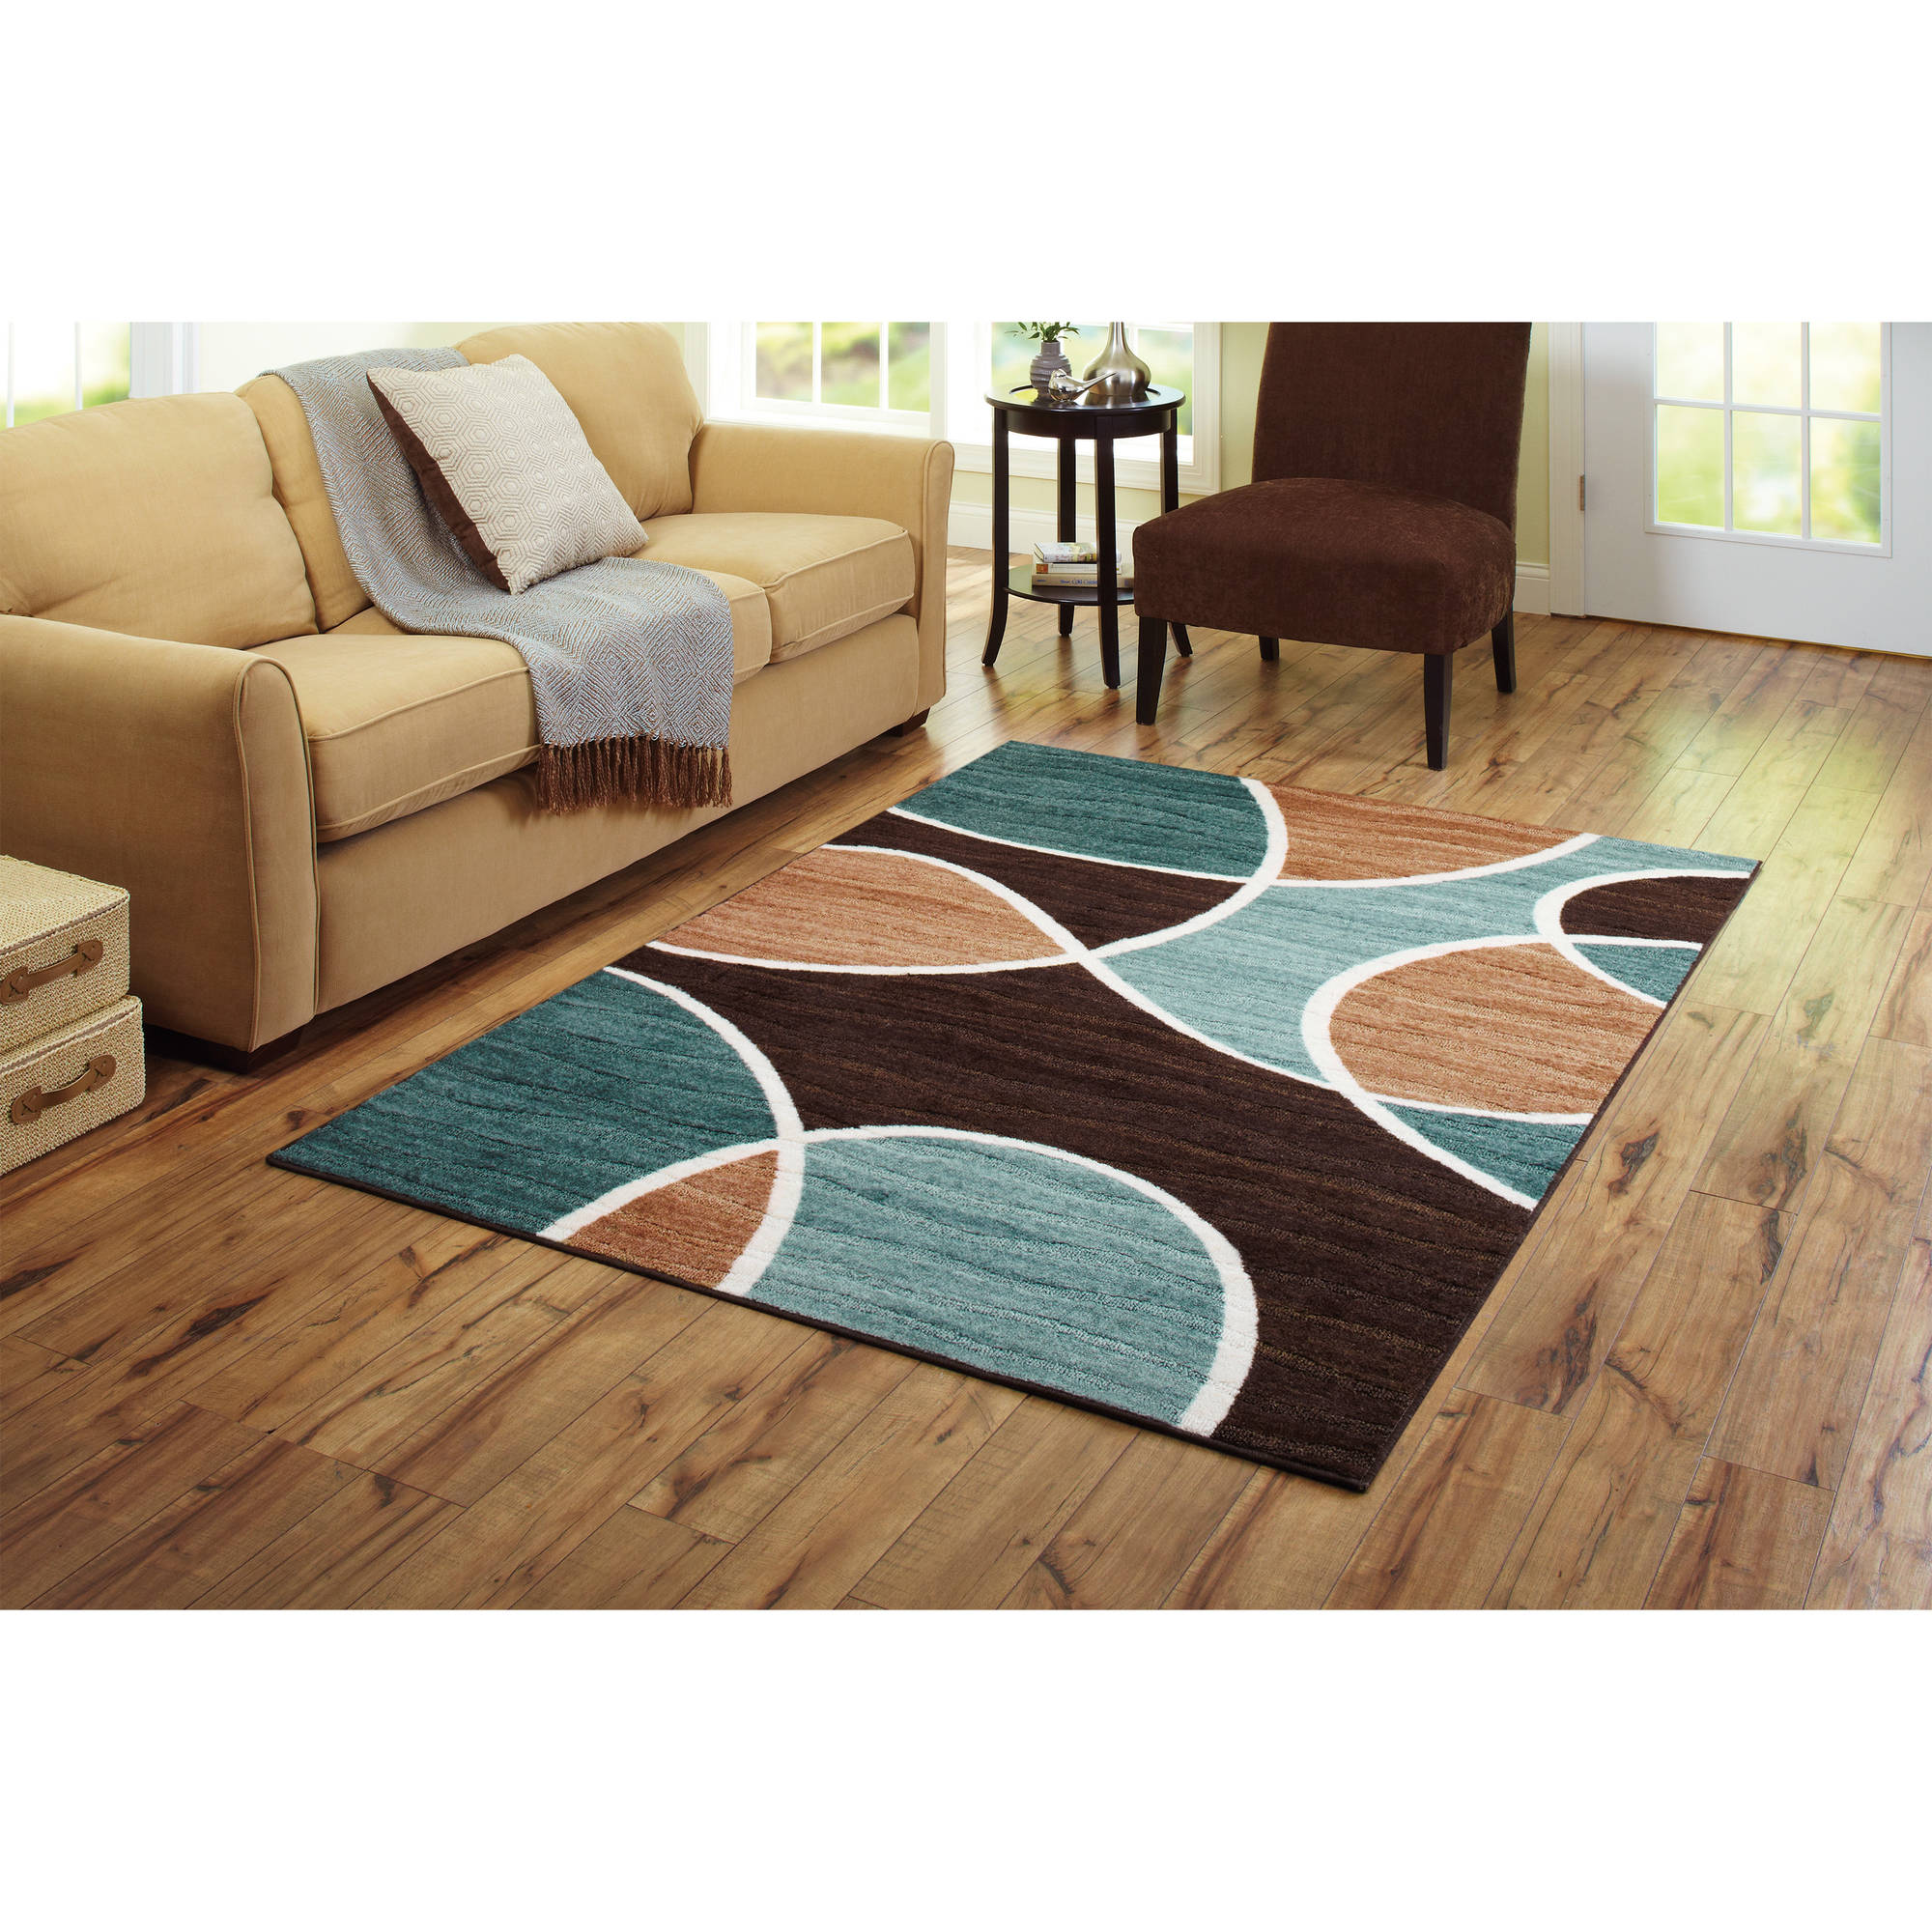 brown area rugs better homes waves geo gardens and area rug or runner ULDIEFM